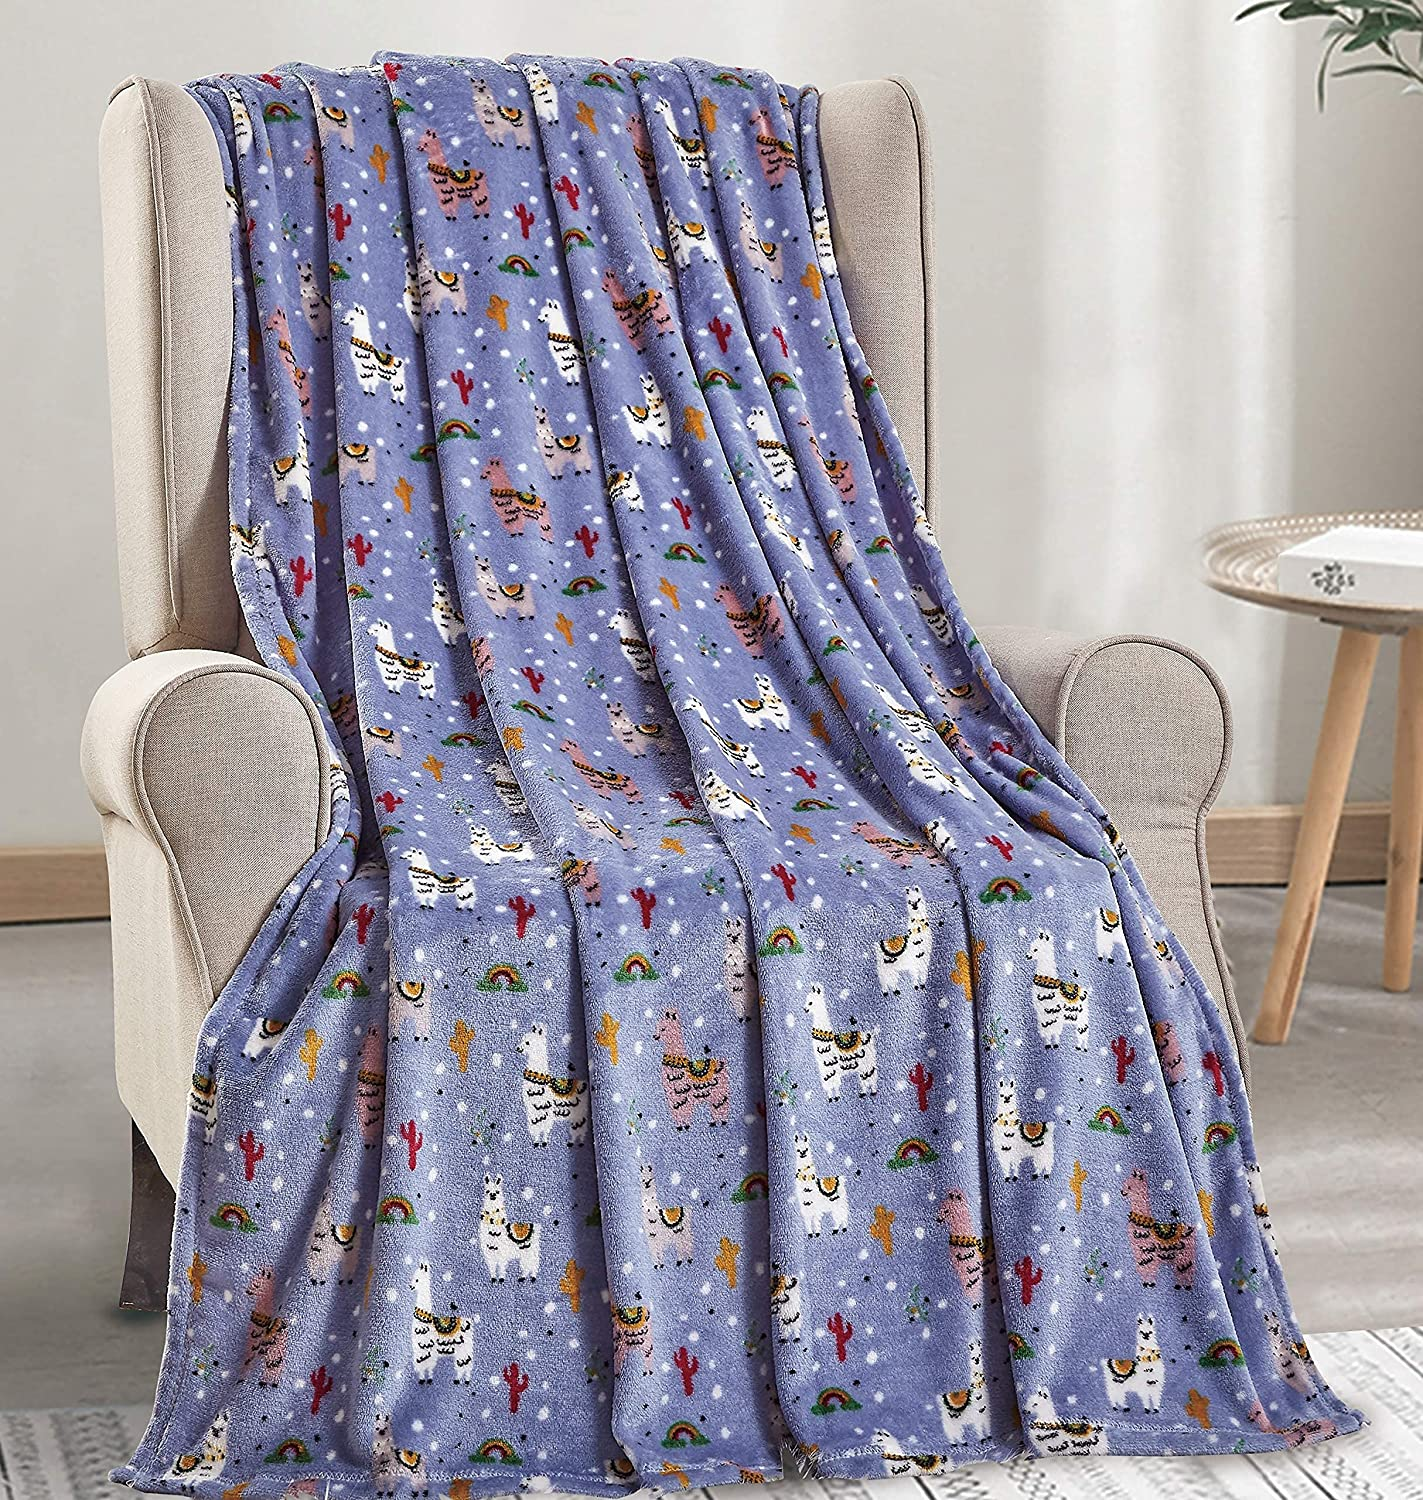 DécorMore Whimsy 2021new shipping free shipping Max 65% OFF Collection Microplush x Blanket Throw 50